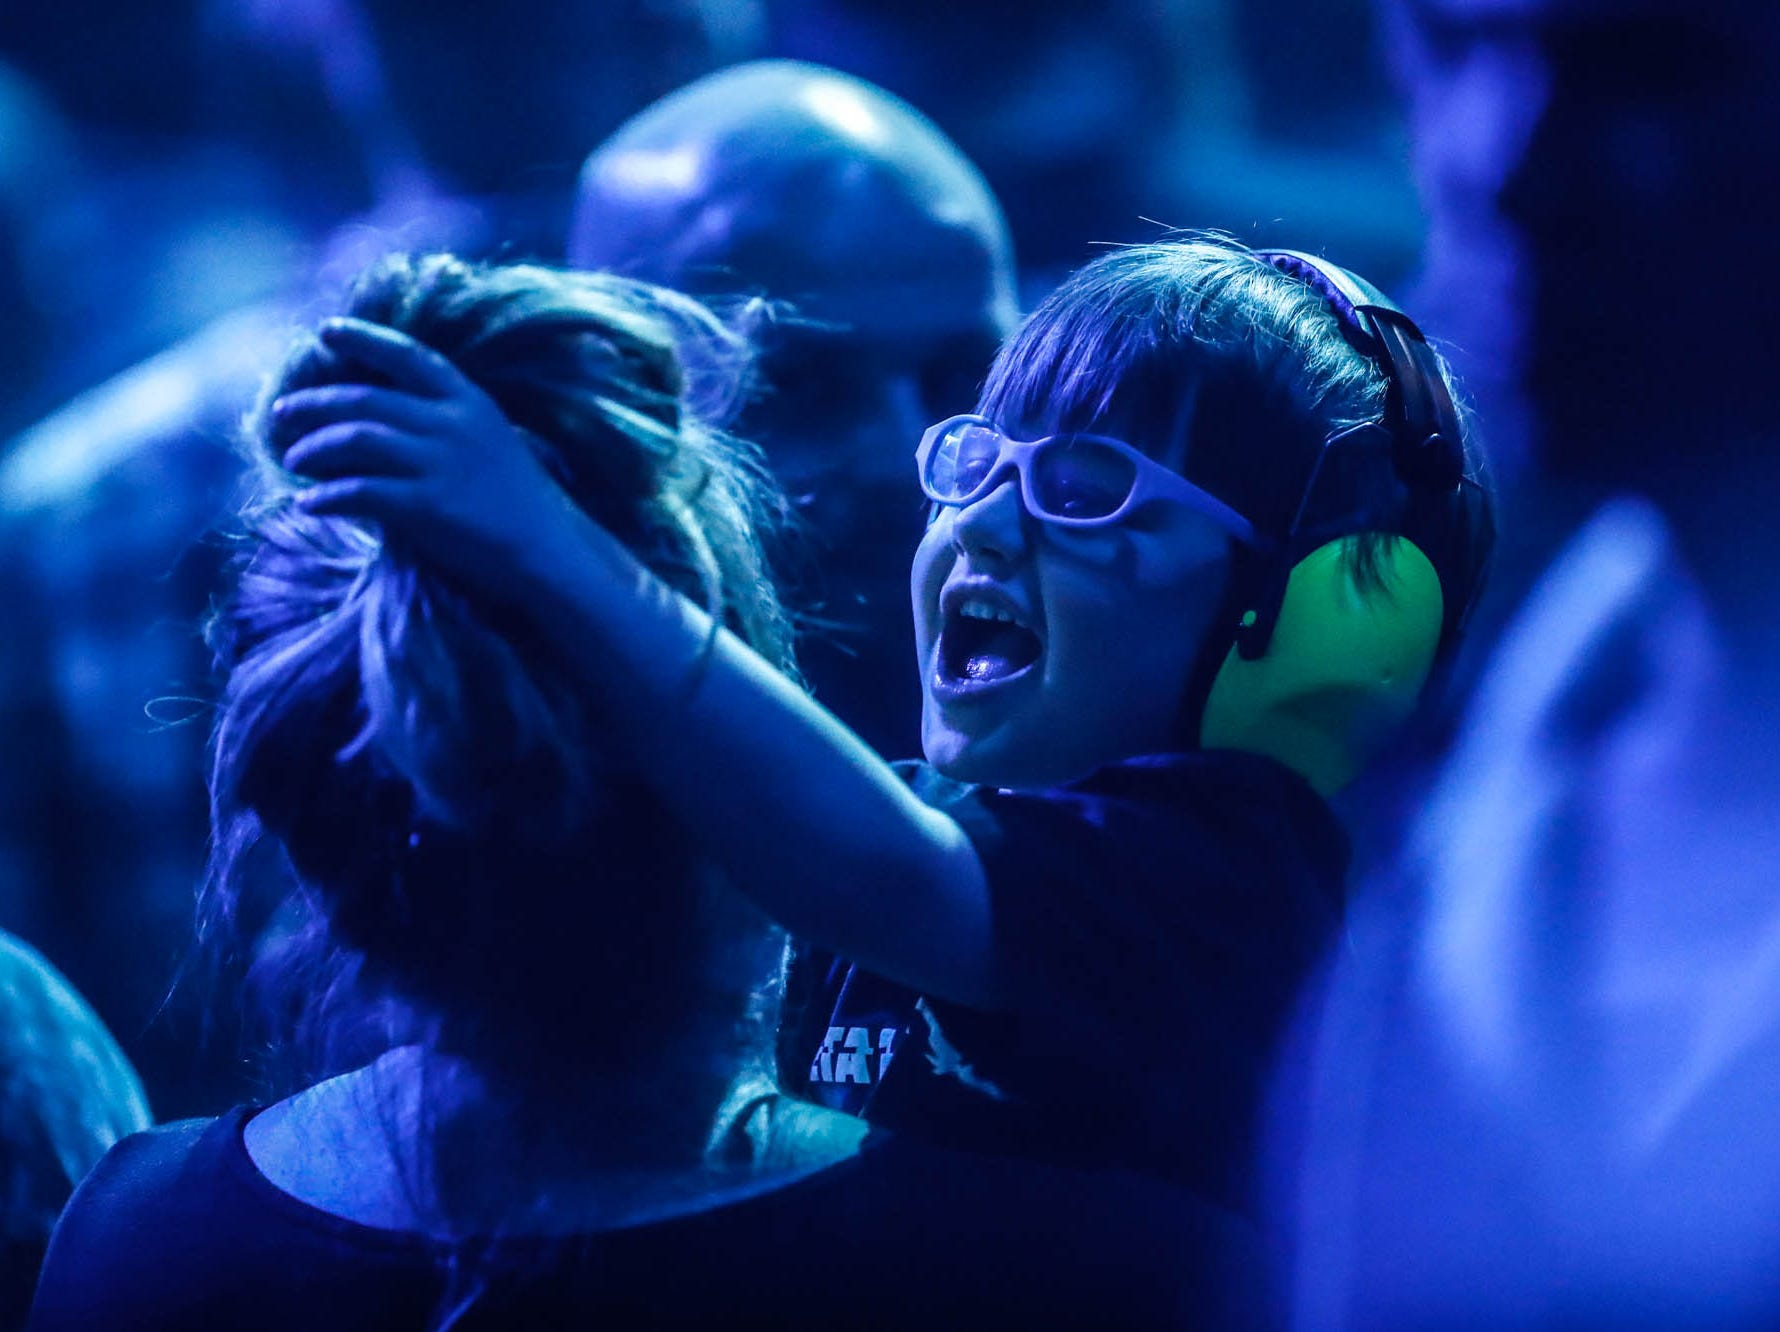 A young fans helps adjust a caregivers hair while waiting for Metallica to take the stage at Bankers Life Fieldhouse on Monday, March 11, 2019.